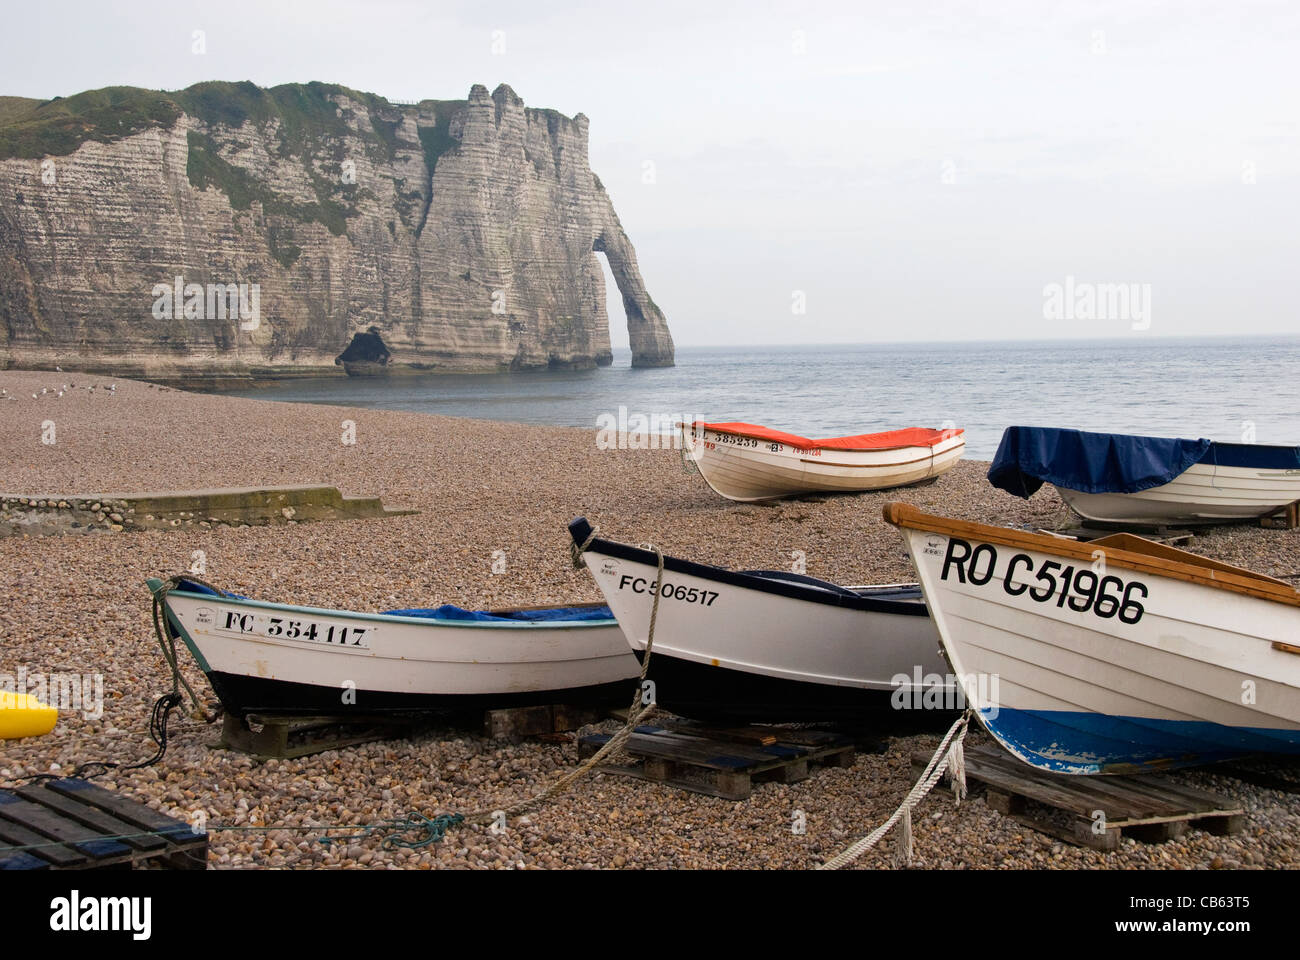 Elk196-1214 France, Normandy, Etretat, town where Monet painted, beach and boats - Stock Image